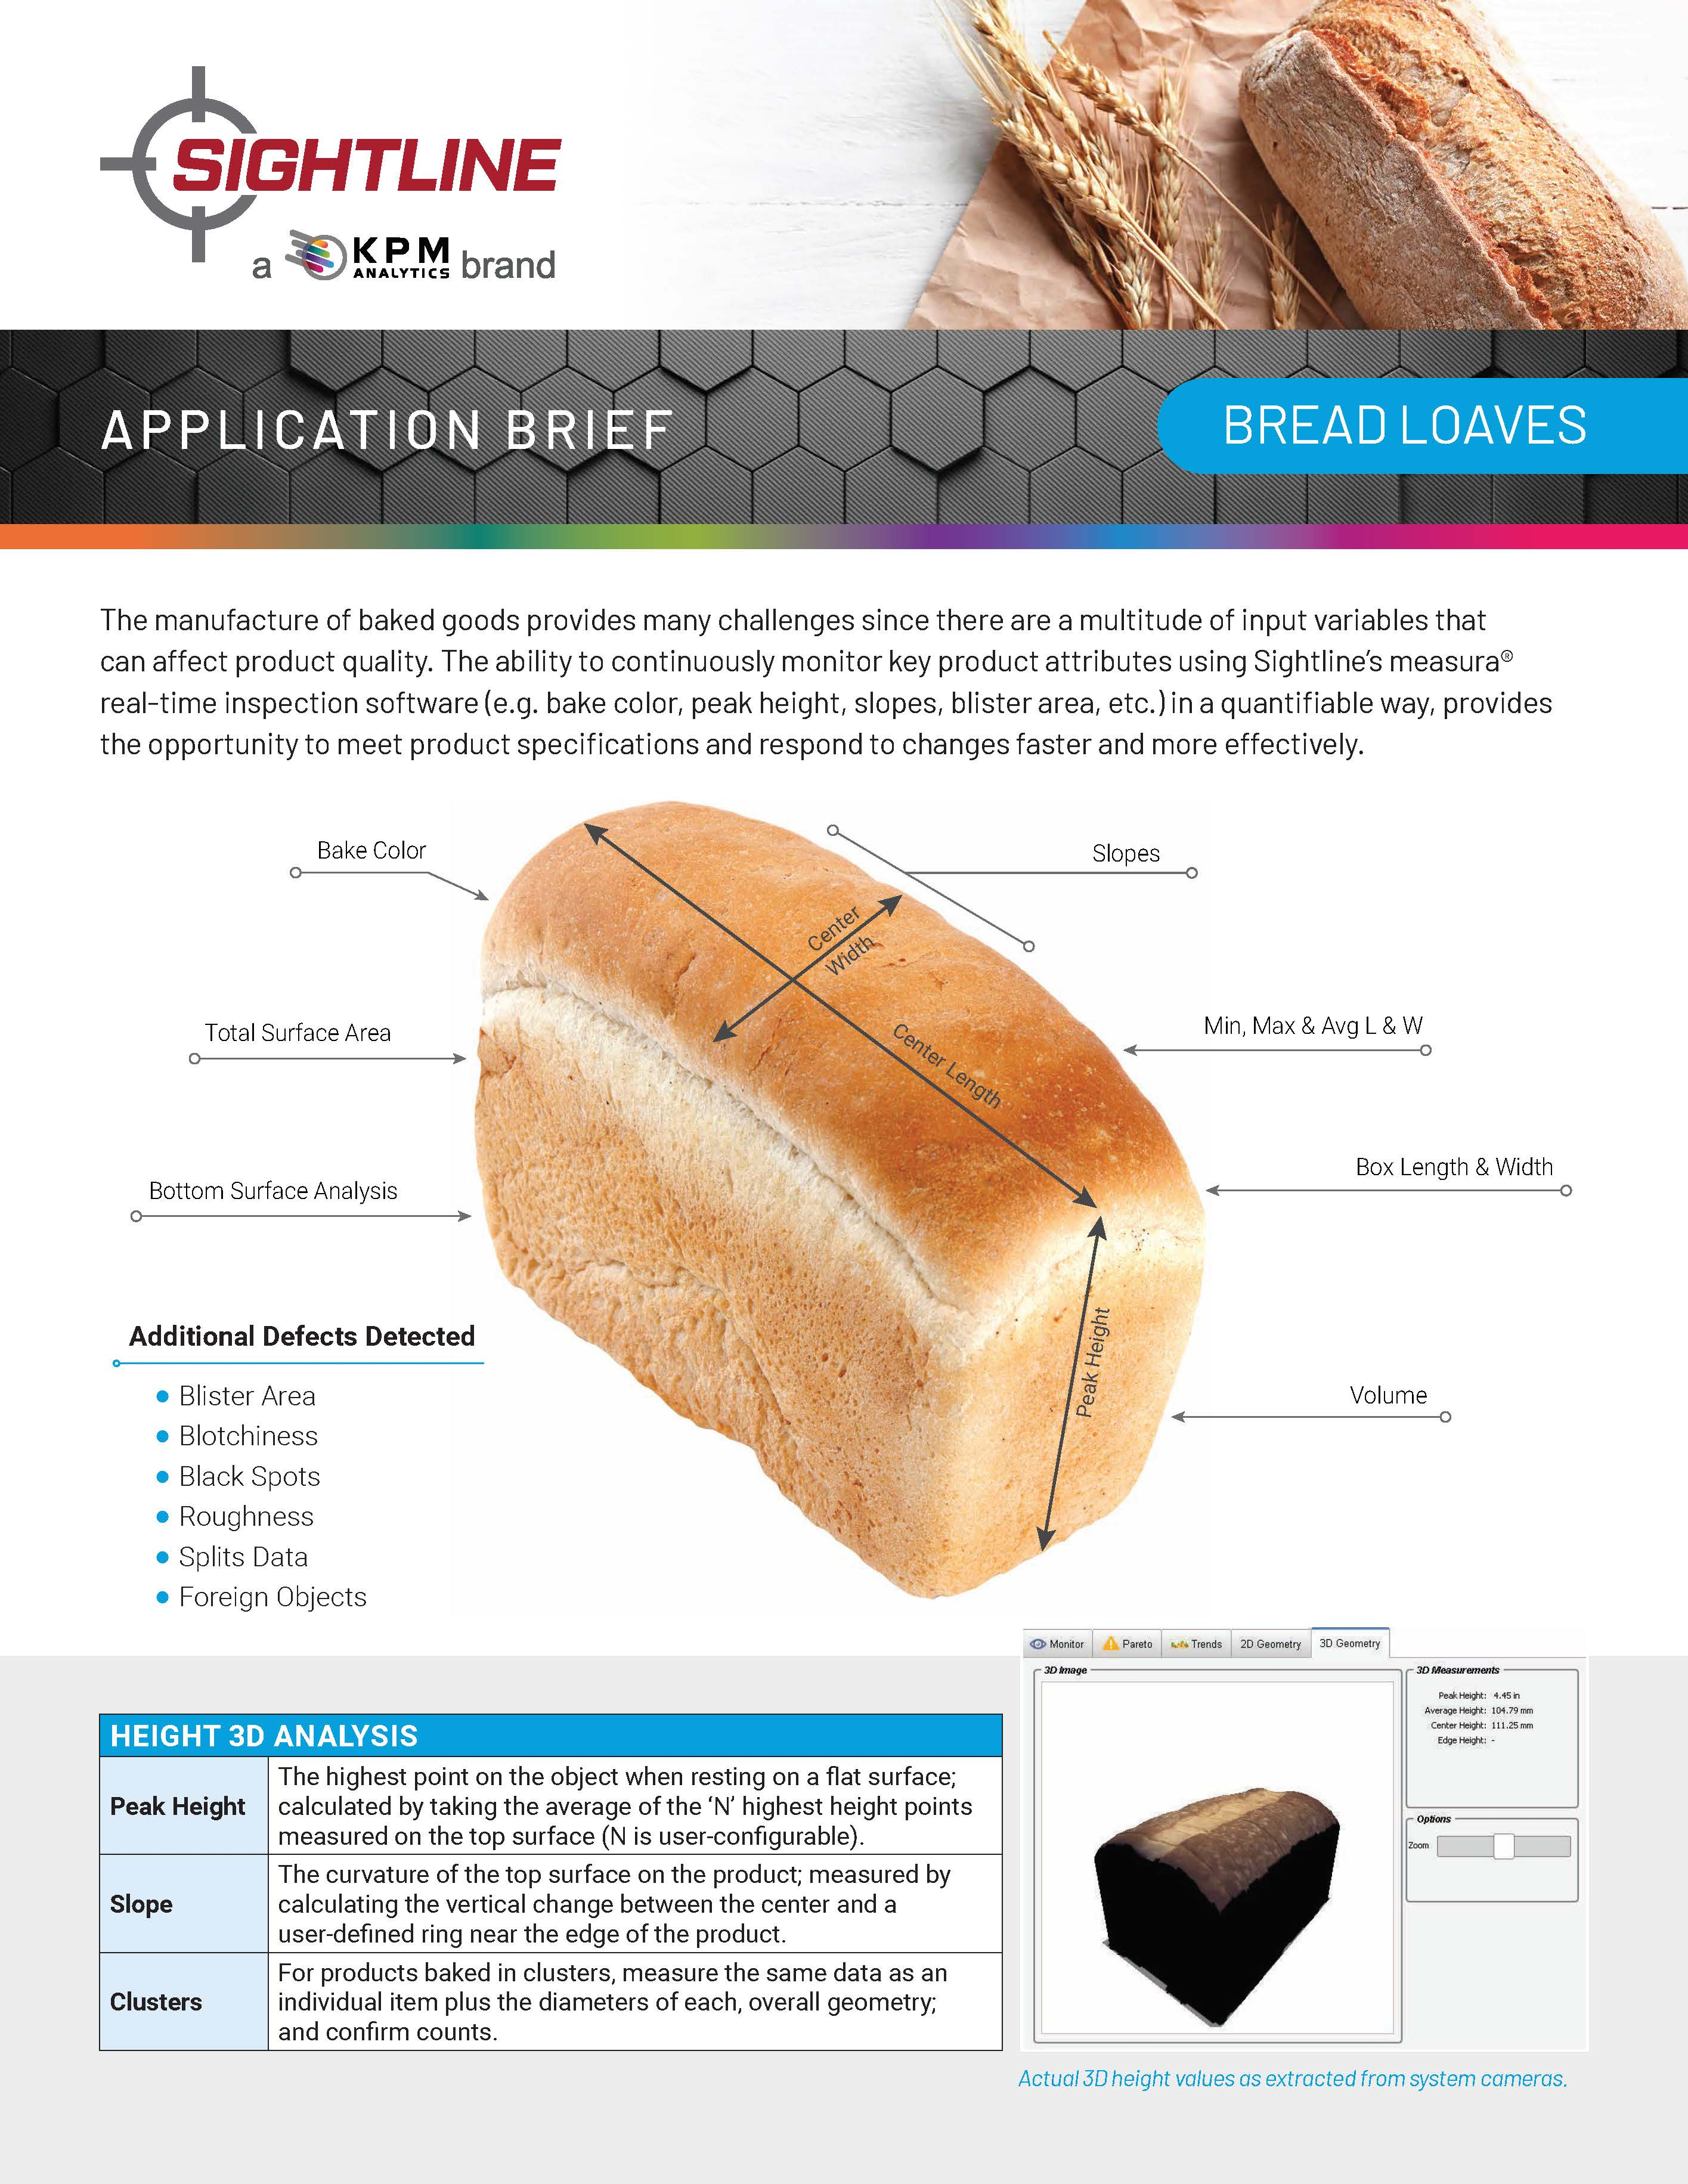 Vision Inspection of Bread